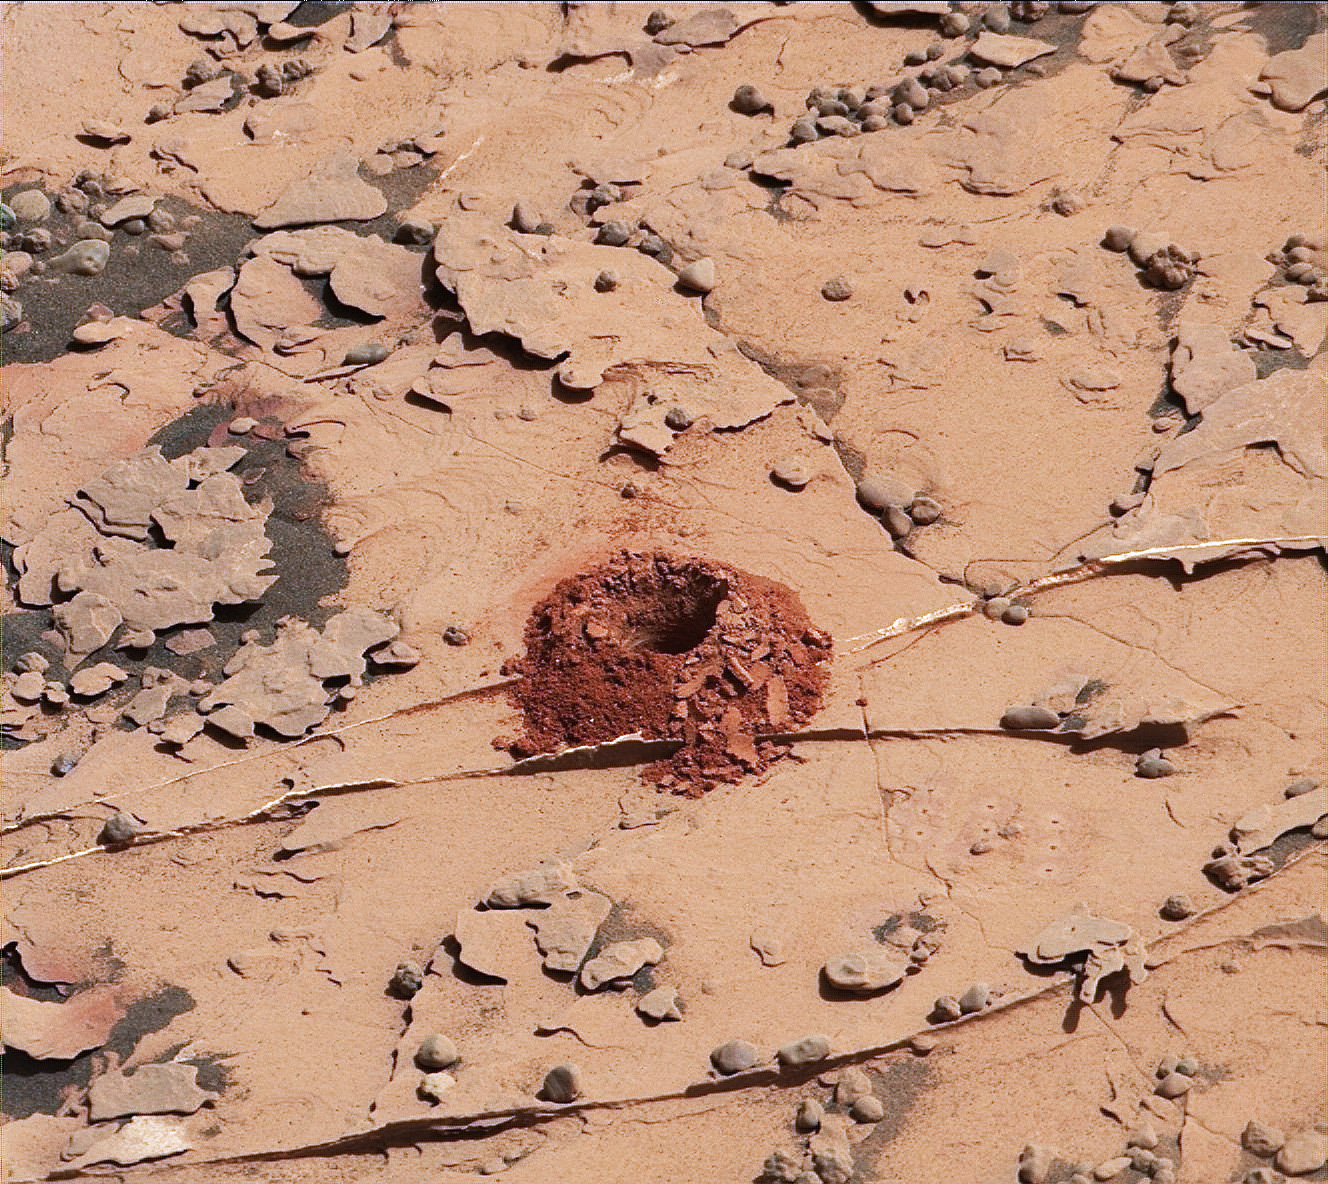 A close-up image of a 2-inch-deep hole produced using a new drilling technique for NASA's Curiosity rover.